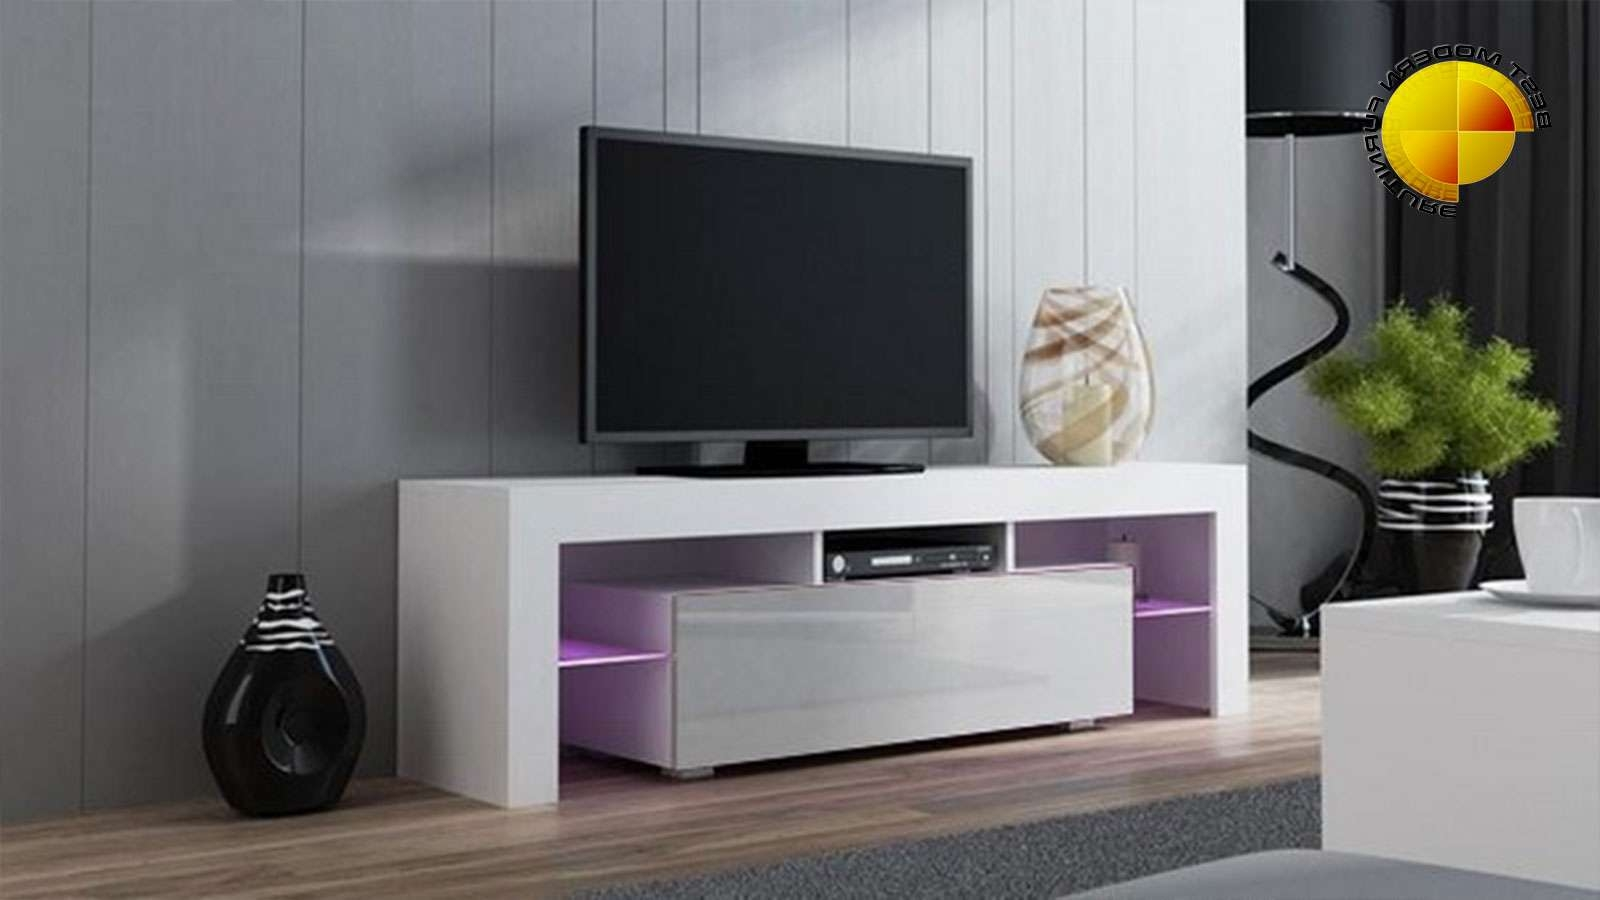 Modern Tv Stand 160cm High Gloss Cabinet Rgb Led Lights White Unit Pertaining To High Gloss Tv Cabinets (View 4 of 20)